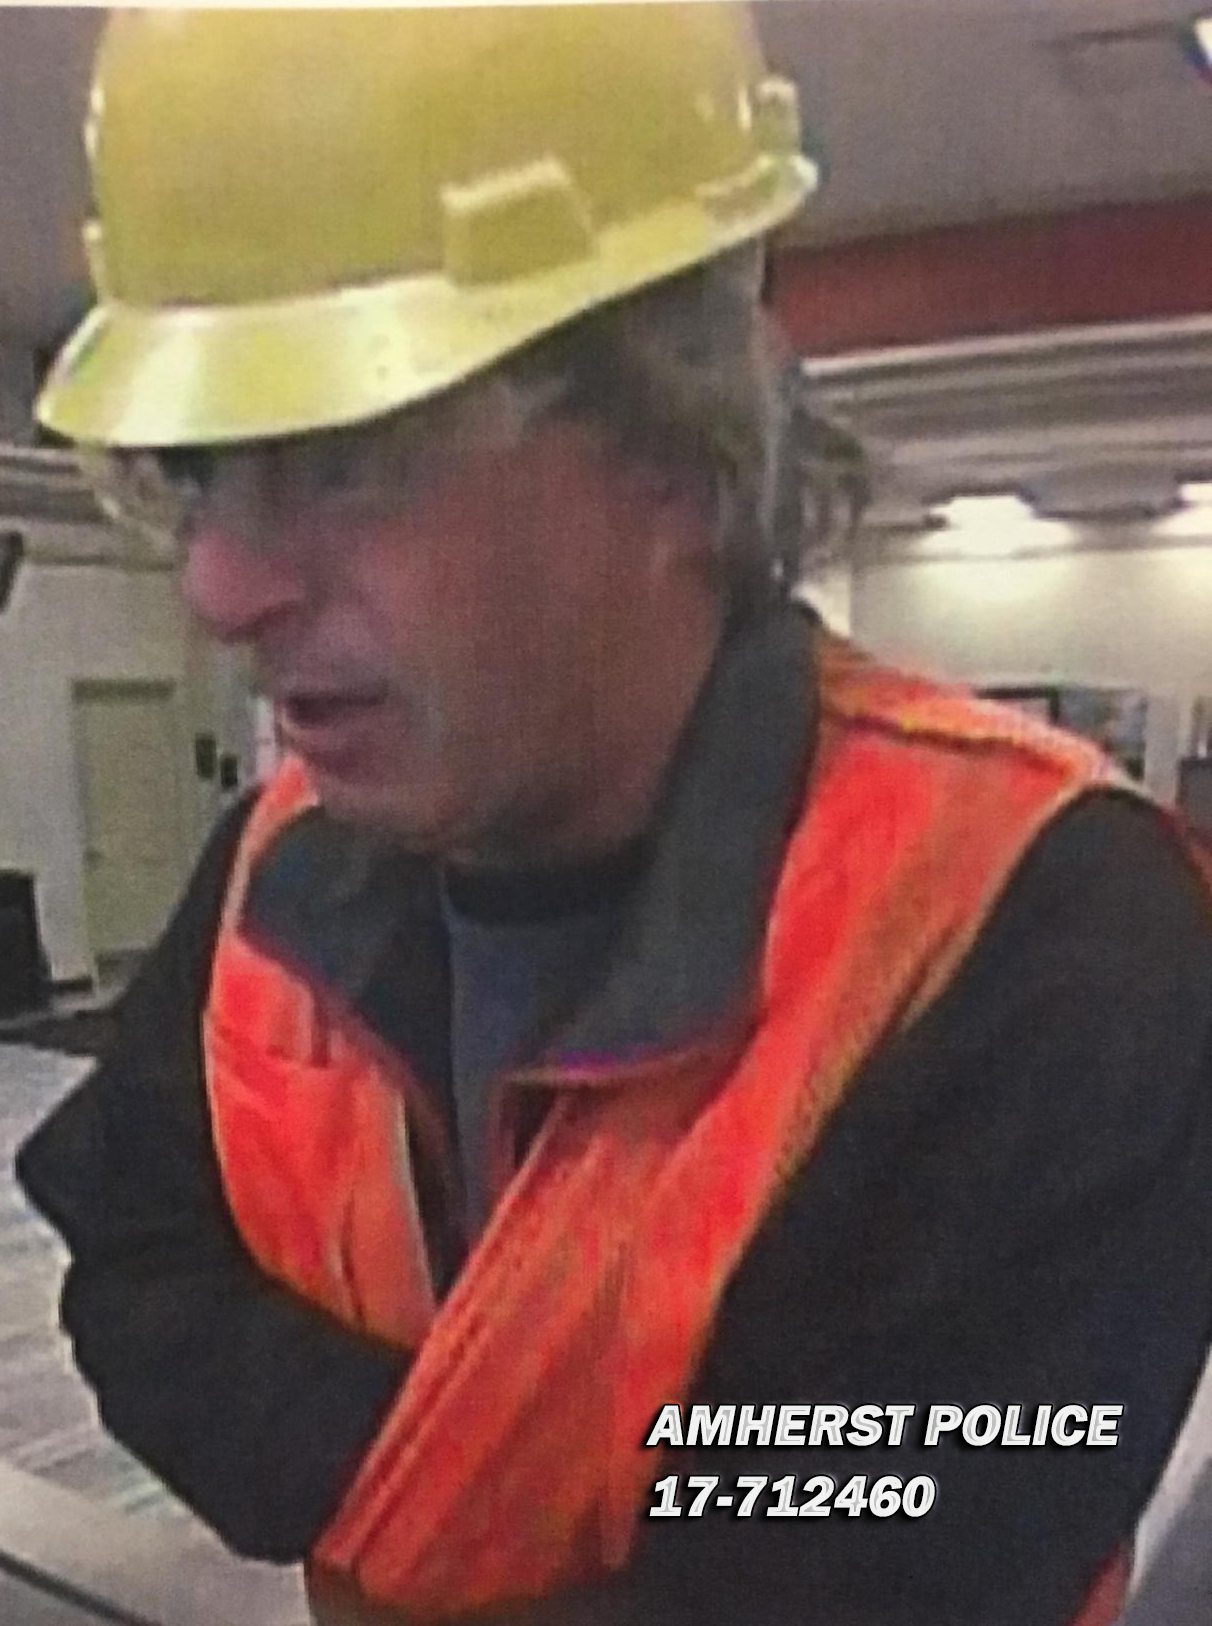 Police said a man dressed in a construction helmet and safety vest robbed a KeyBank branch  in Amherst Monday afternoon. (Amherst Police Department)